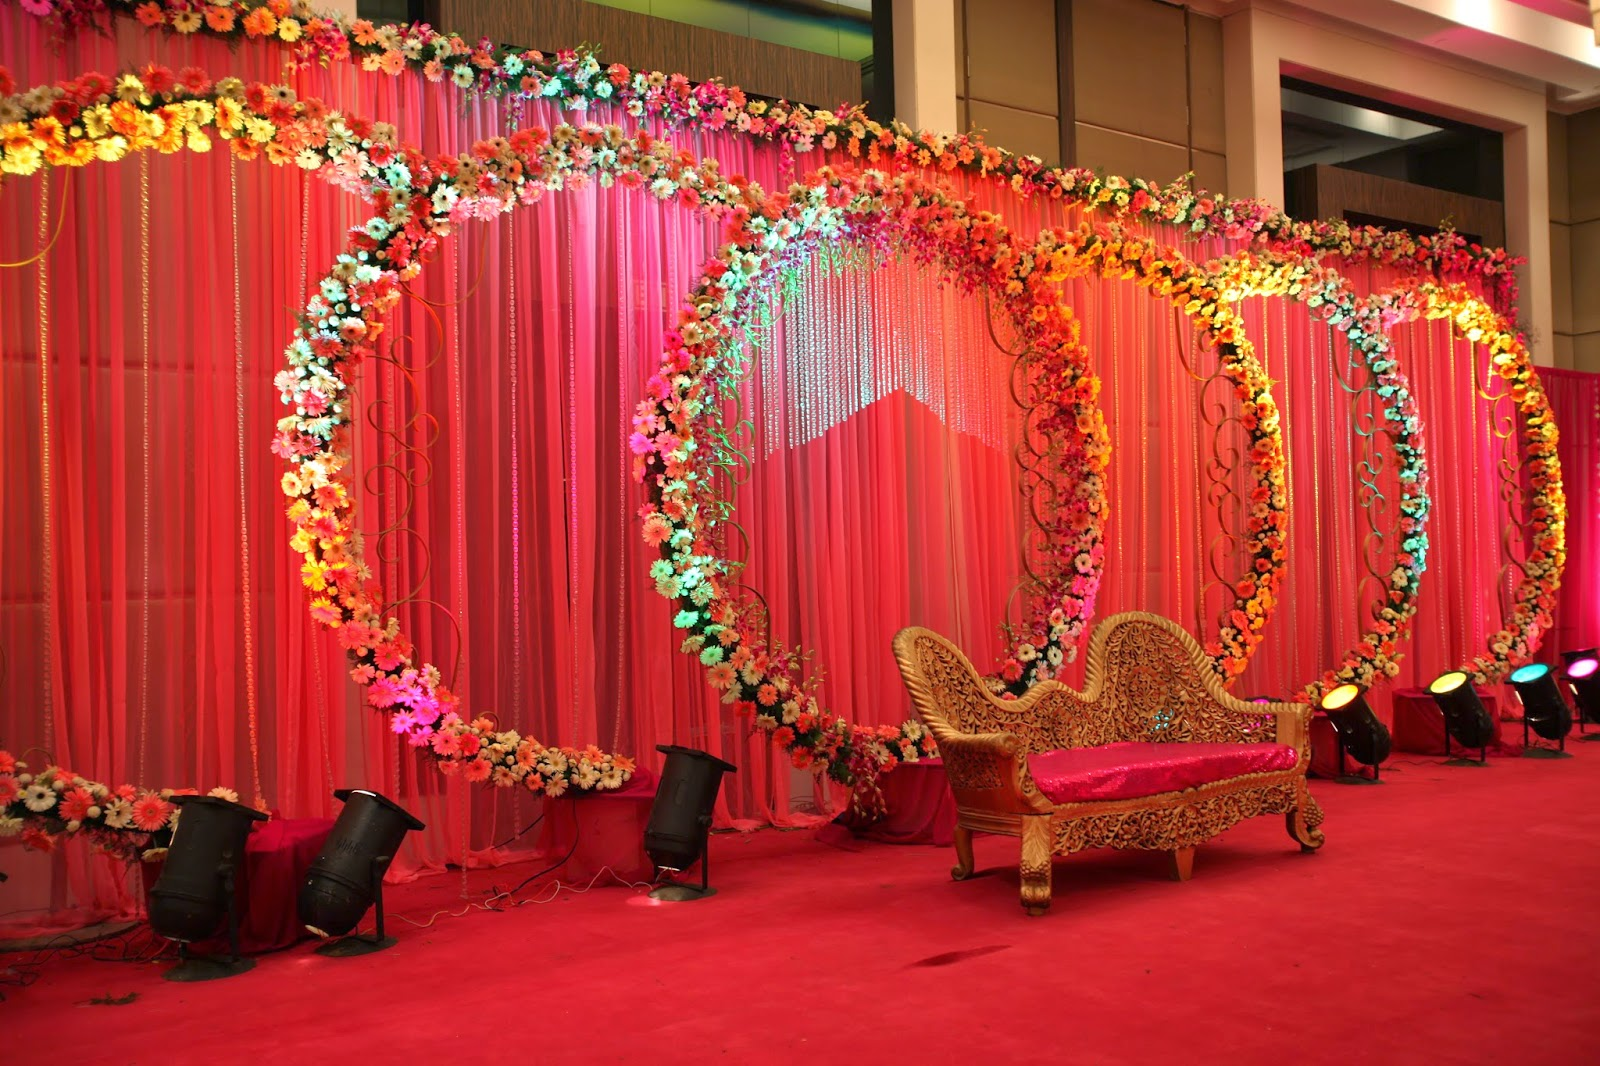 Flowers hd wallpapers 2015 beautiful flowers images for 25th wedding anniversary stage decoration